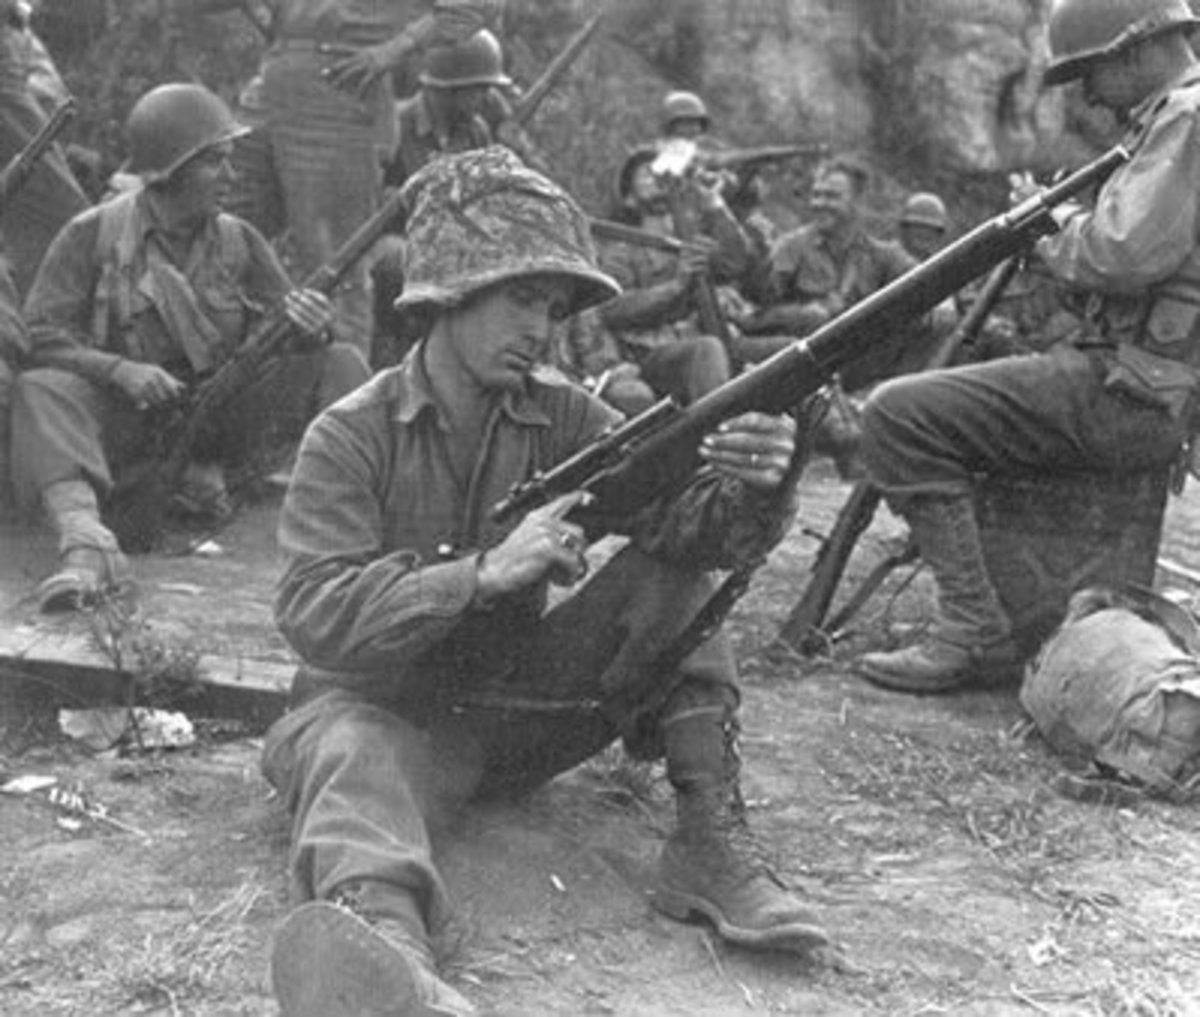 made-in-america-sniper-rifles-a-history